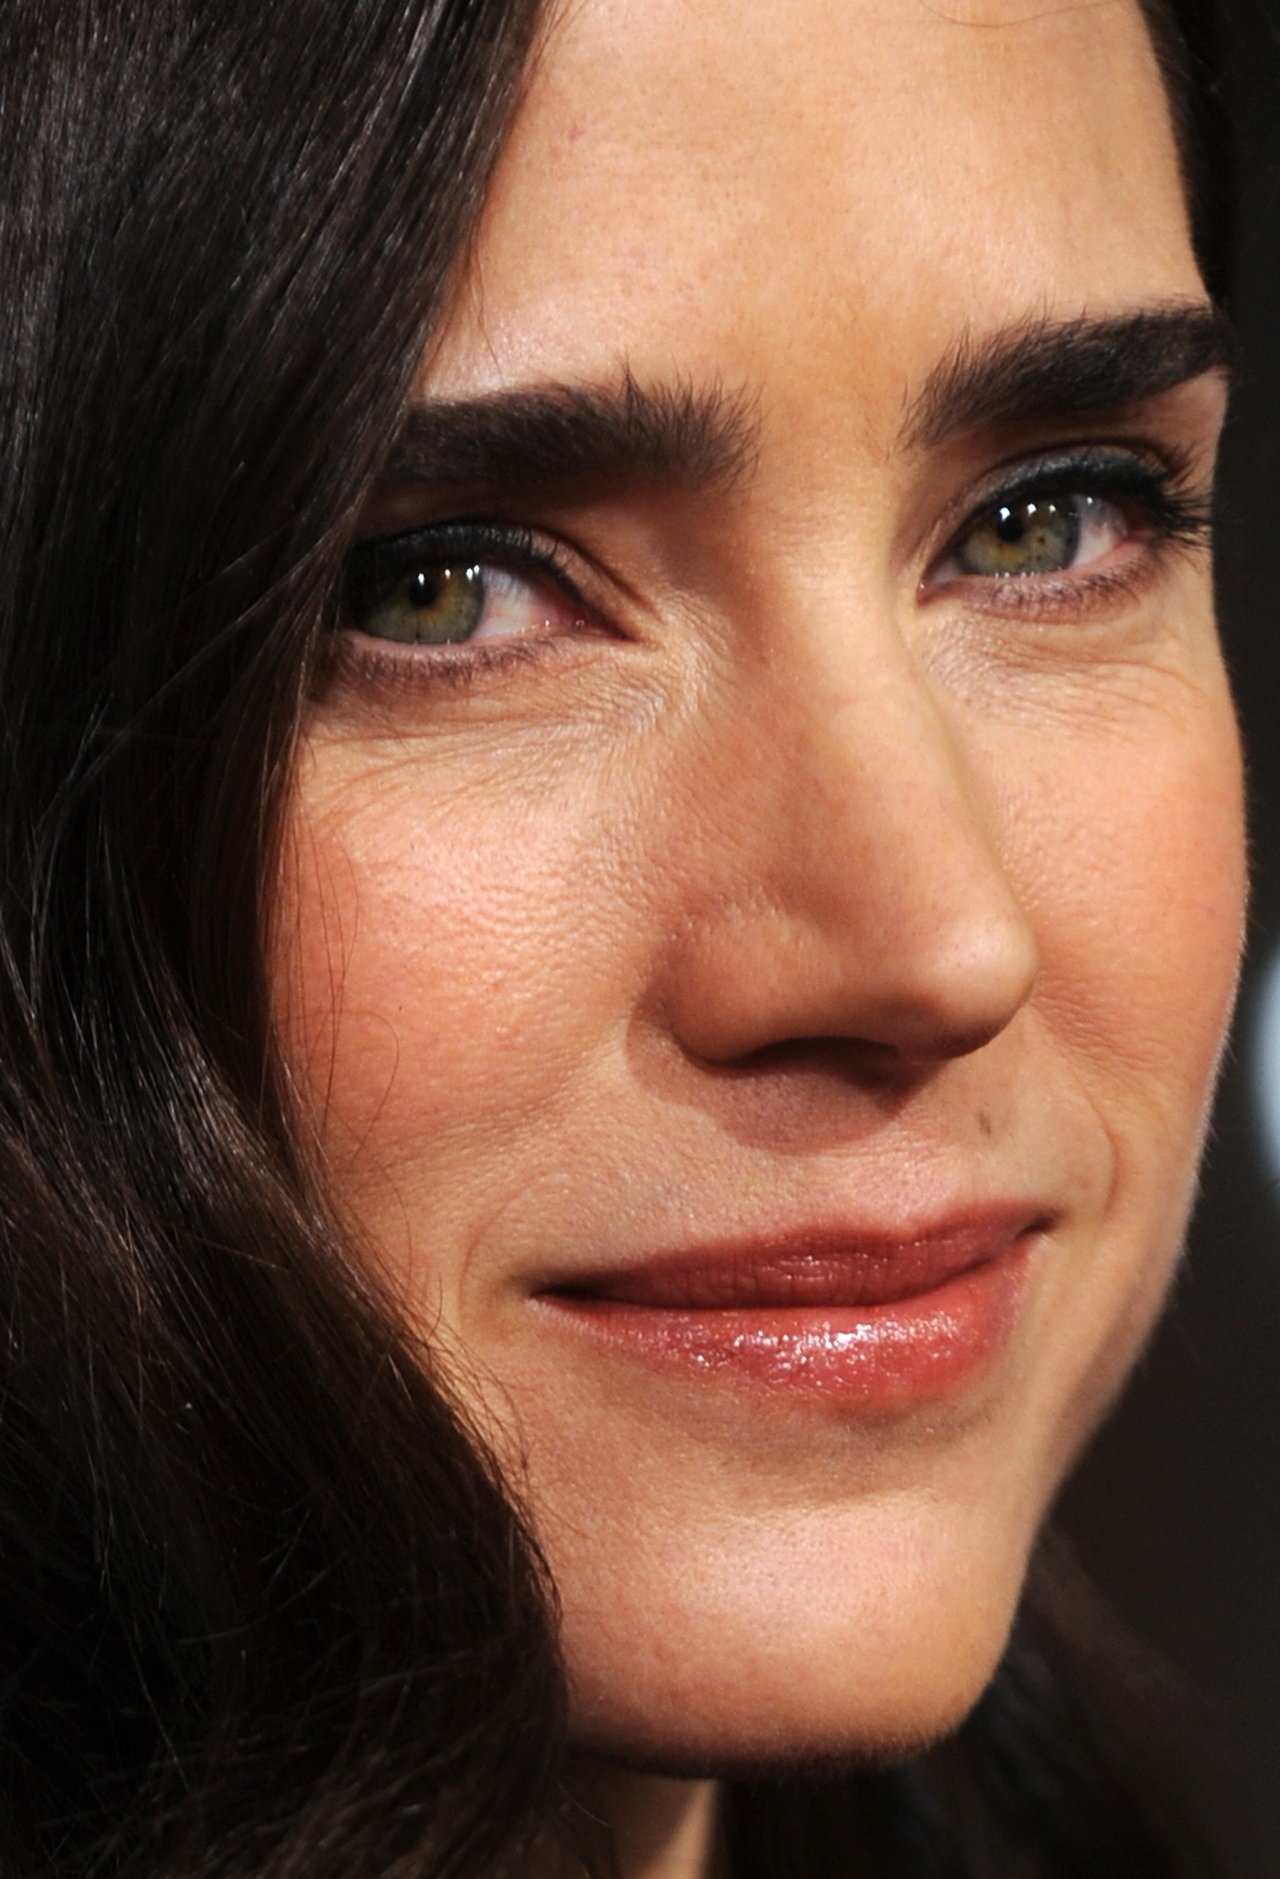 jennifer connelly wallpapers | Jennifer Connelly Wallpapers ... | 1879x1280